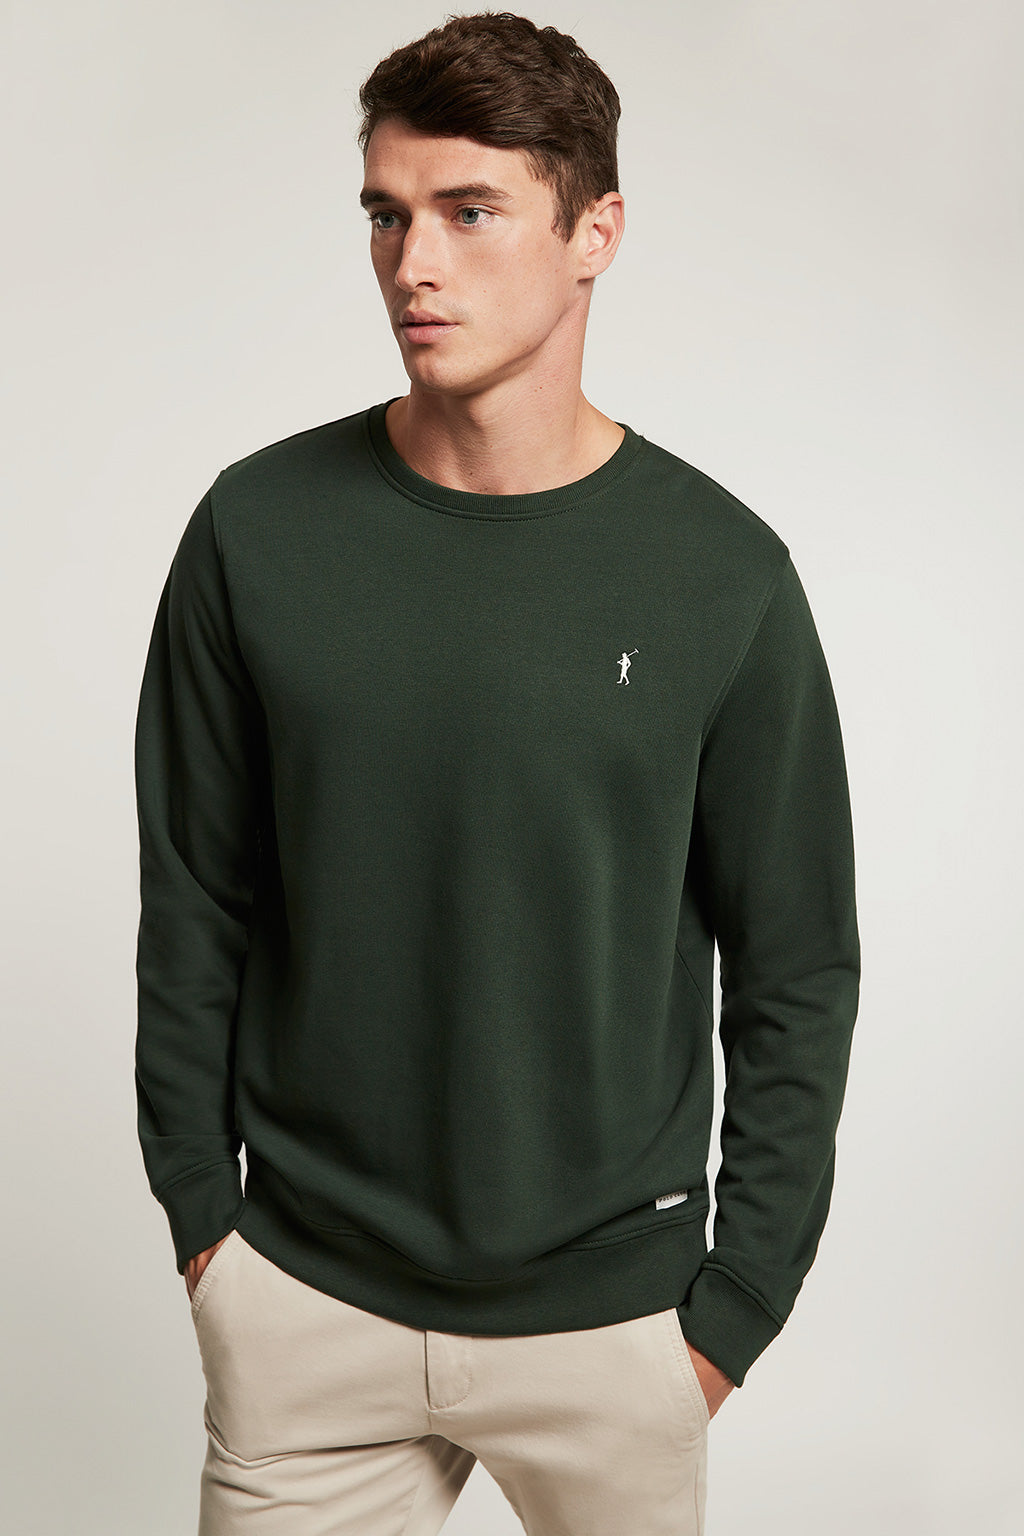 Forest green round neck organic sweatshirt